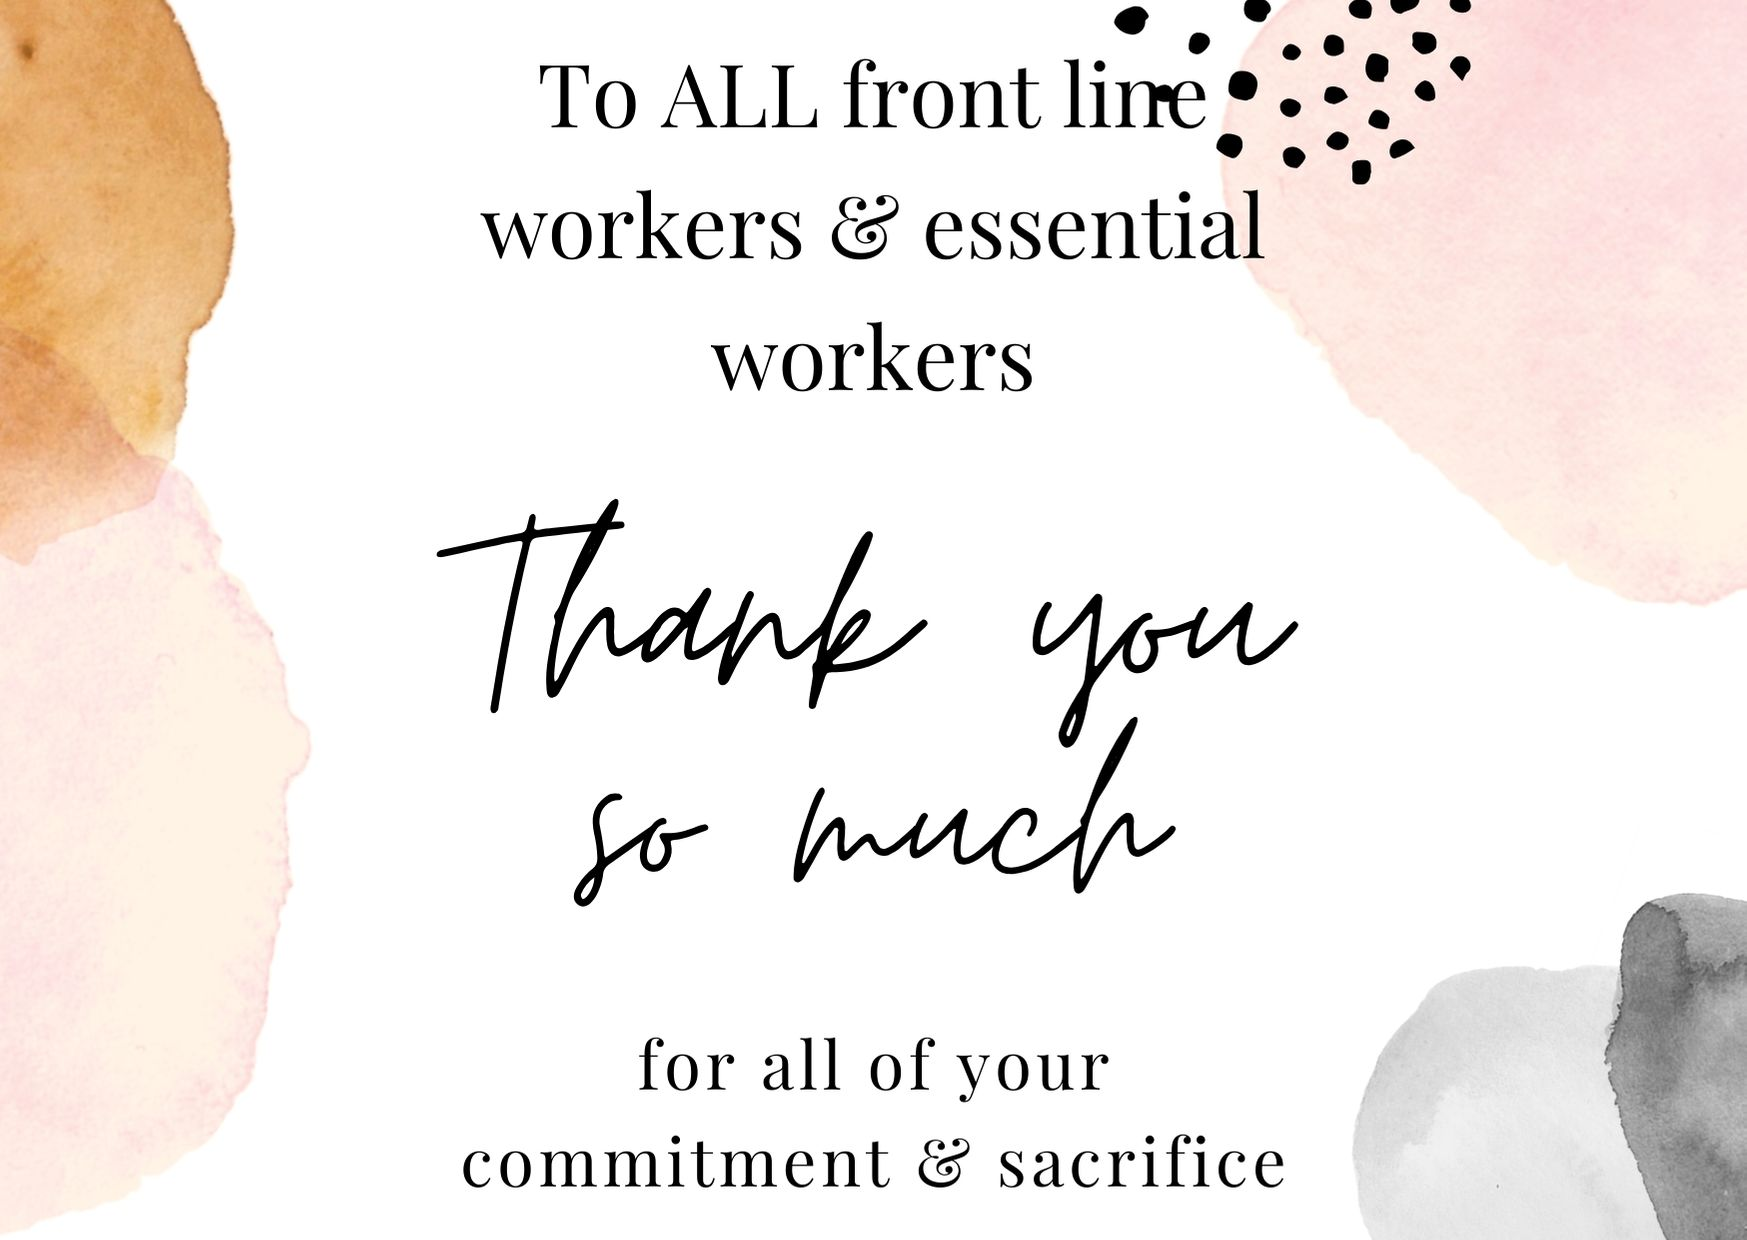 Thank you to our Front Line Workers & Essential Workers